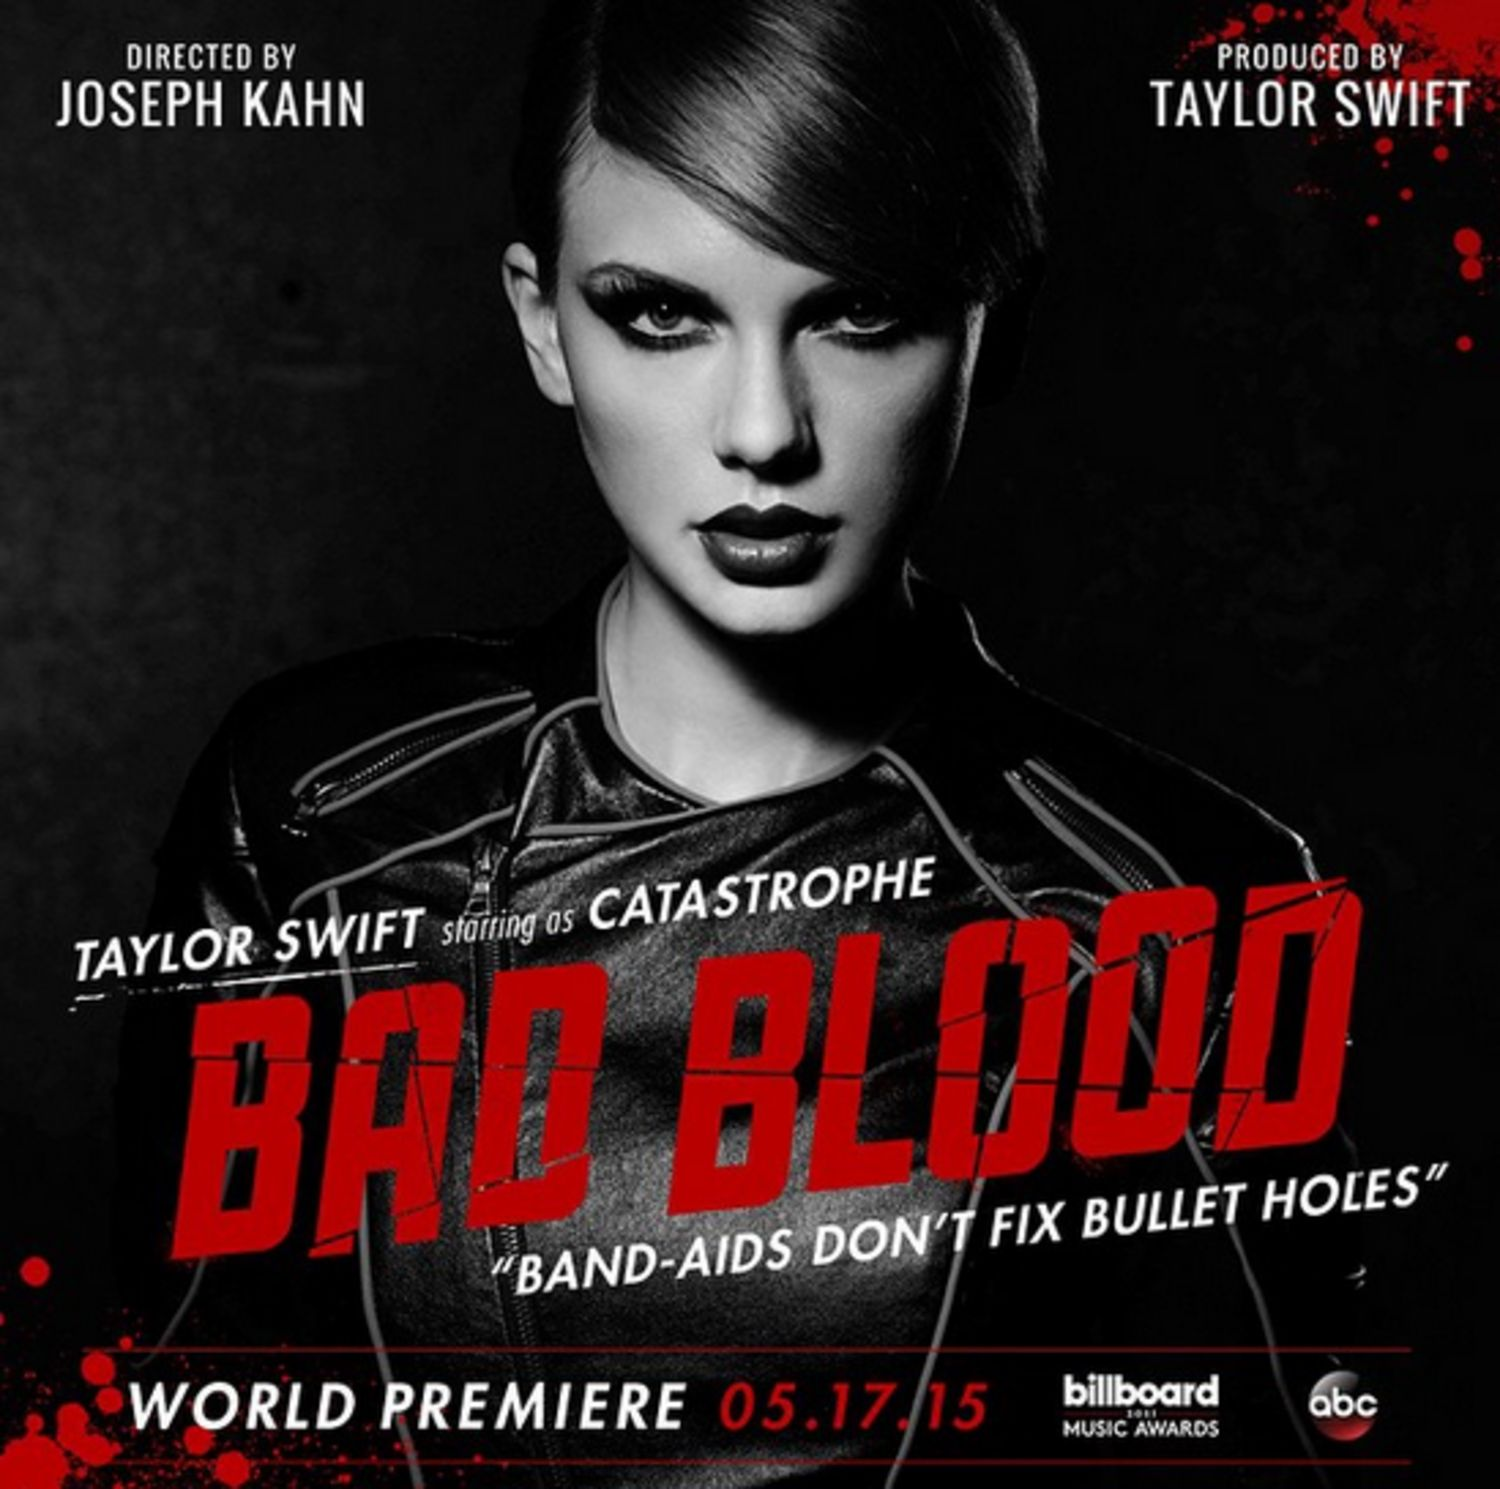 Taylor Swift's 'Bad Blood' Video Breaks Vevo Record